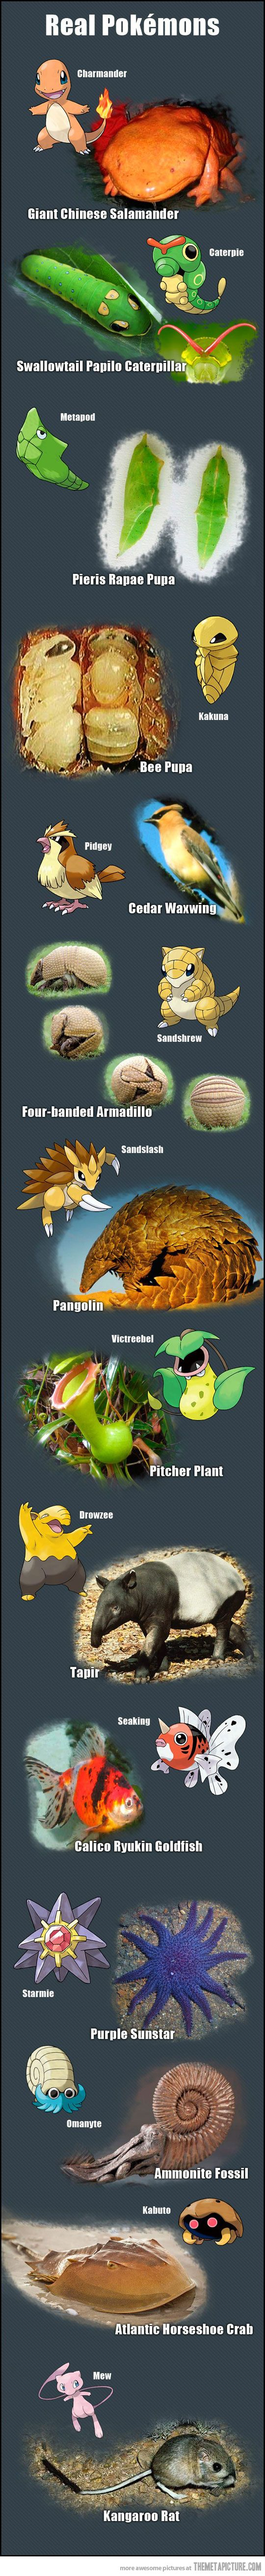 Pokemon in the real world :)